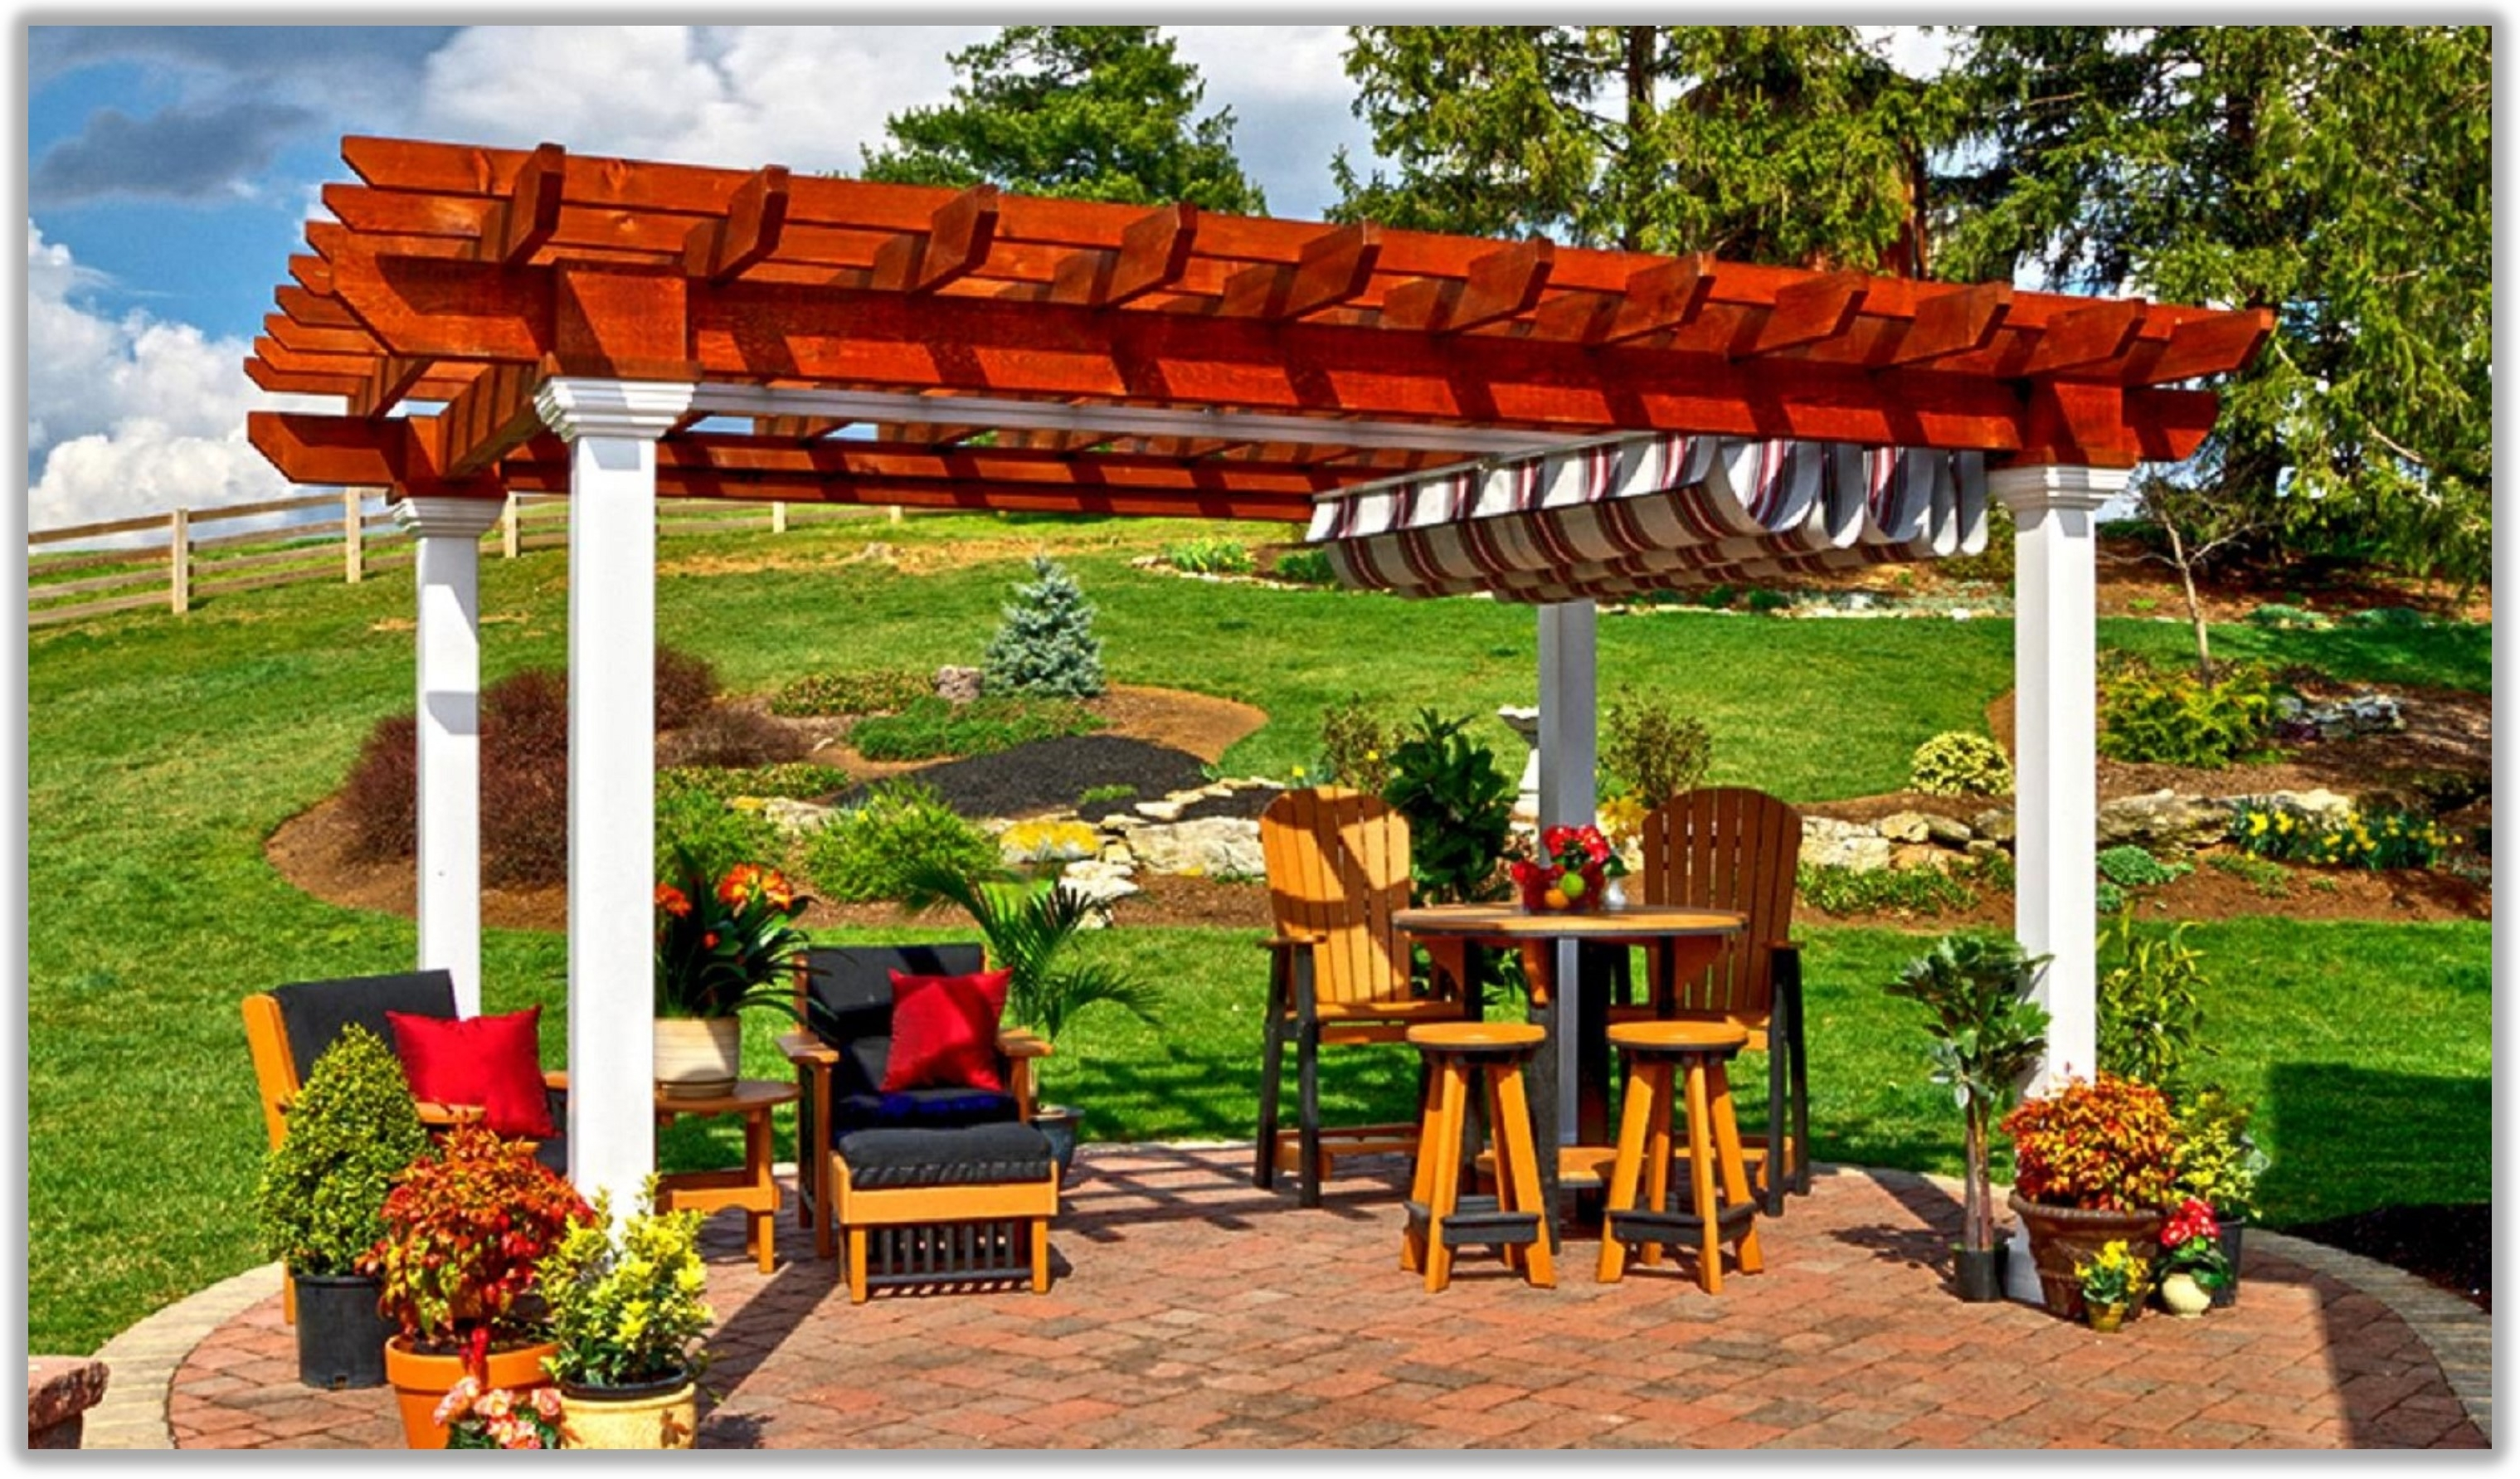 Building a Pergola? Try using Pressure Treated Wood